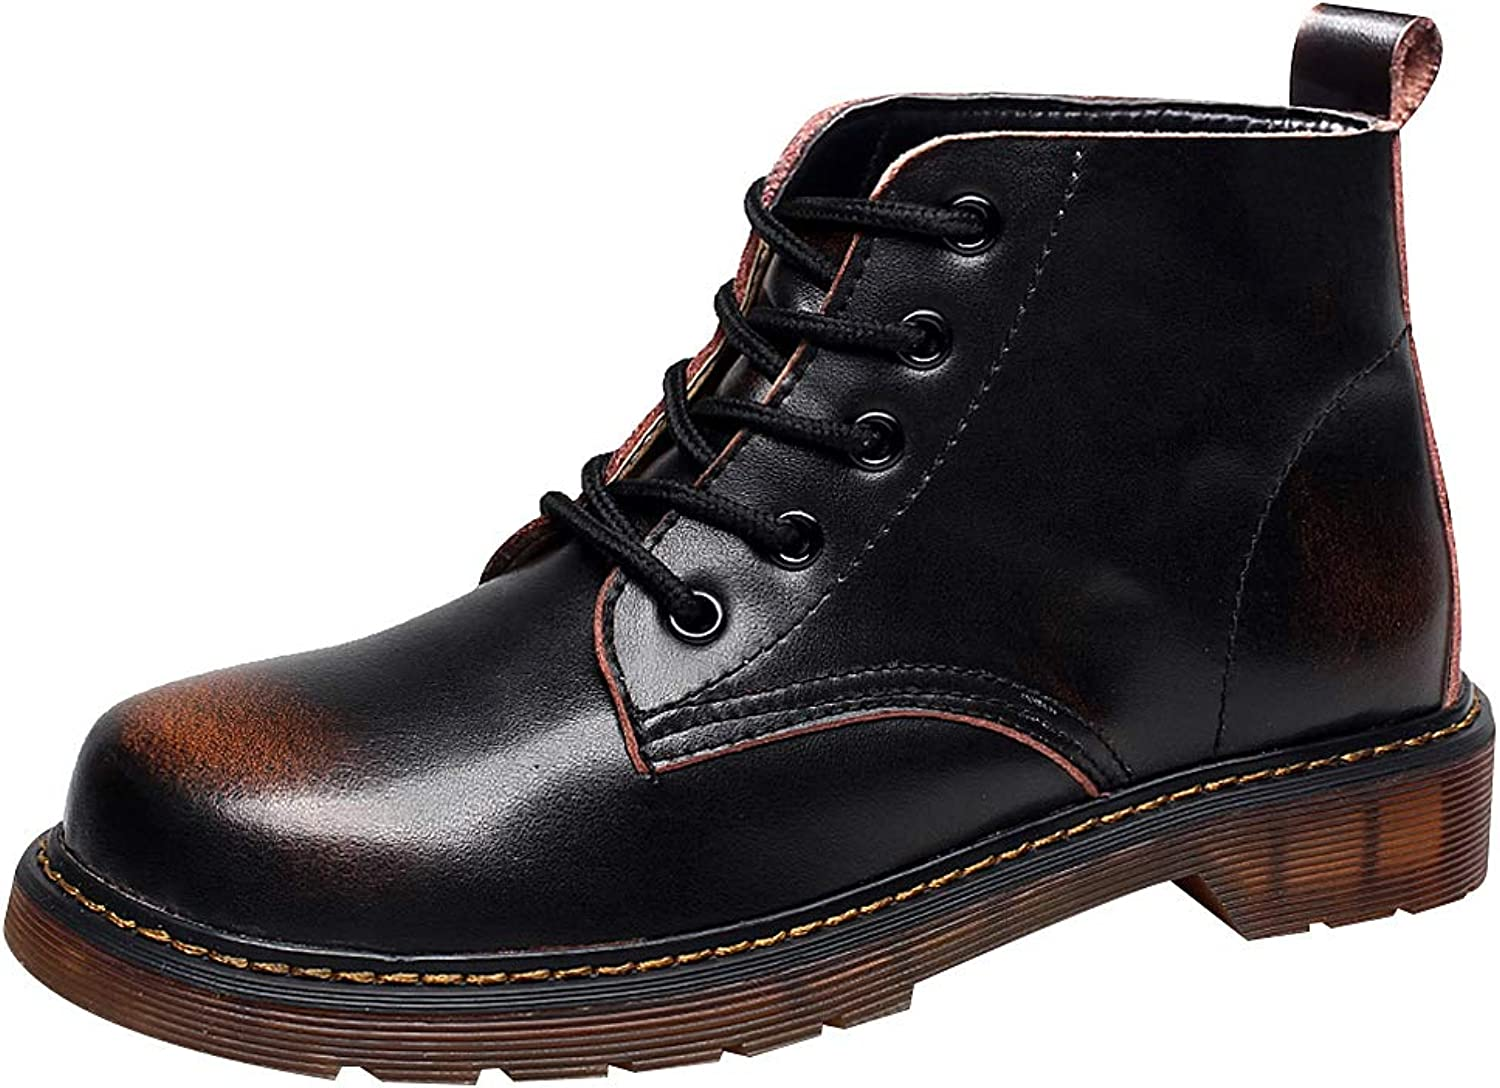 Shenn Women's Ankle High Combat Lace Up Motorcycle Leather Boots